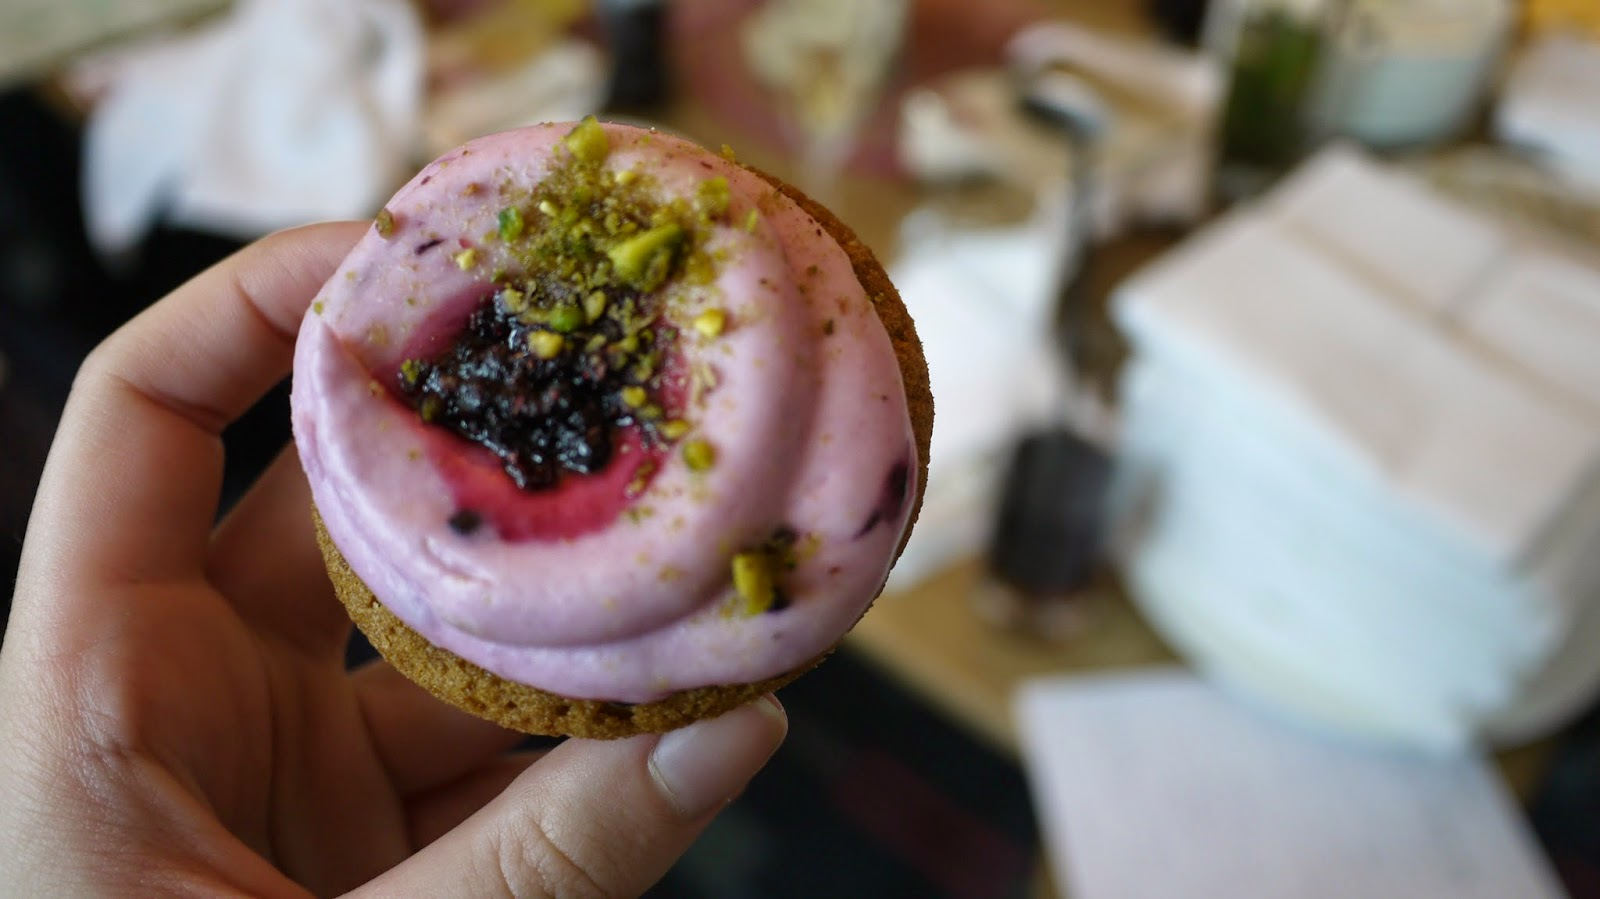 Blueberry and pistachio cupcake